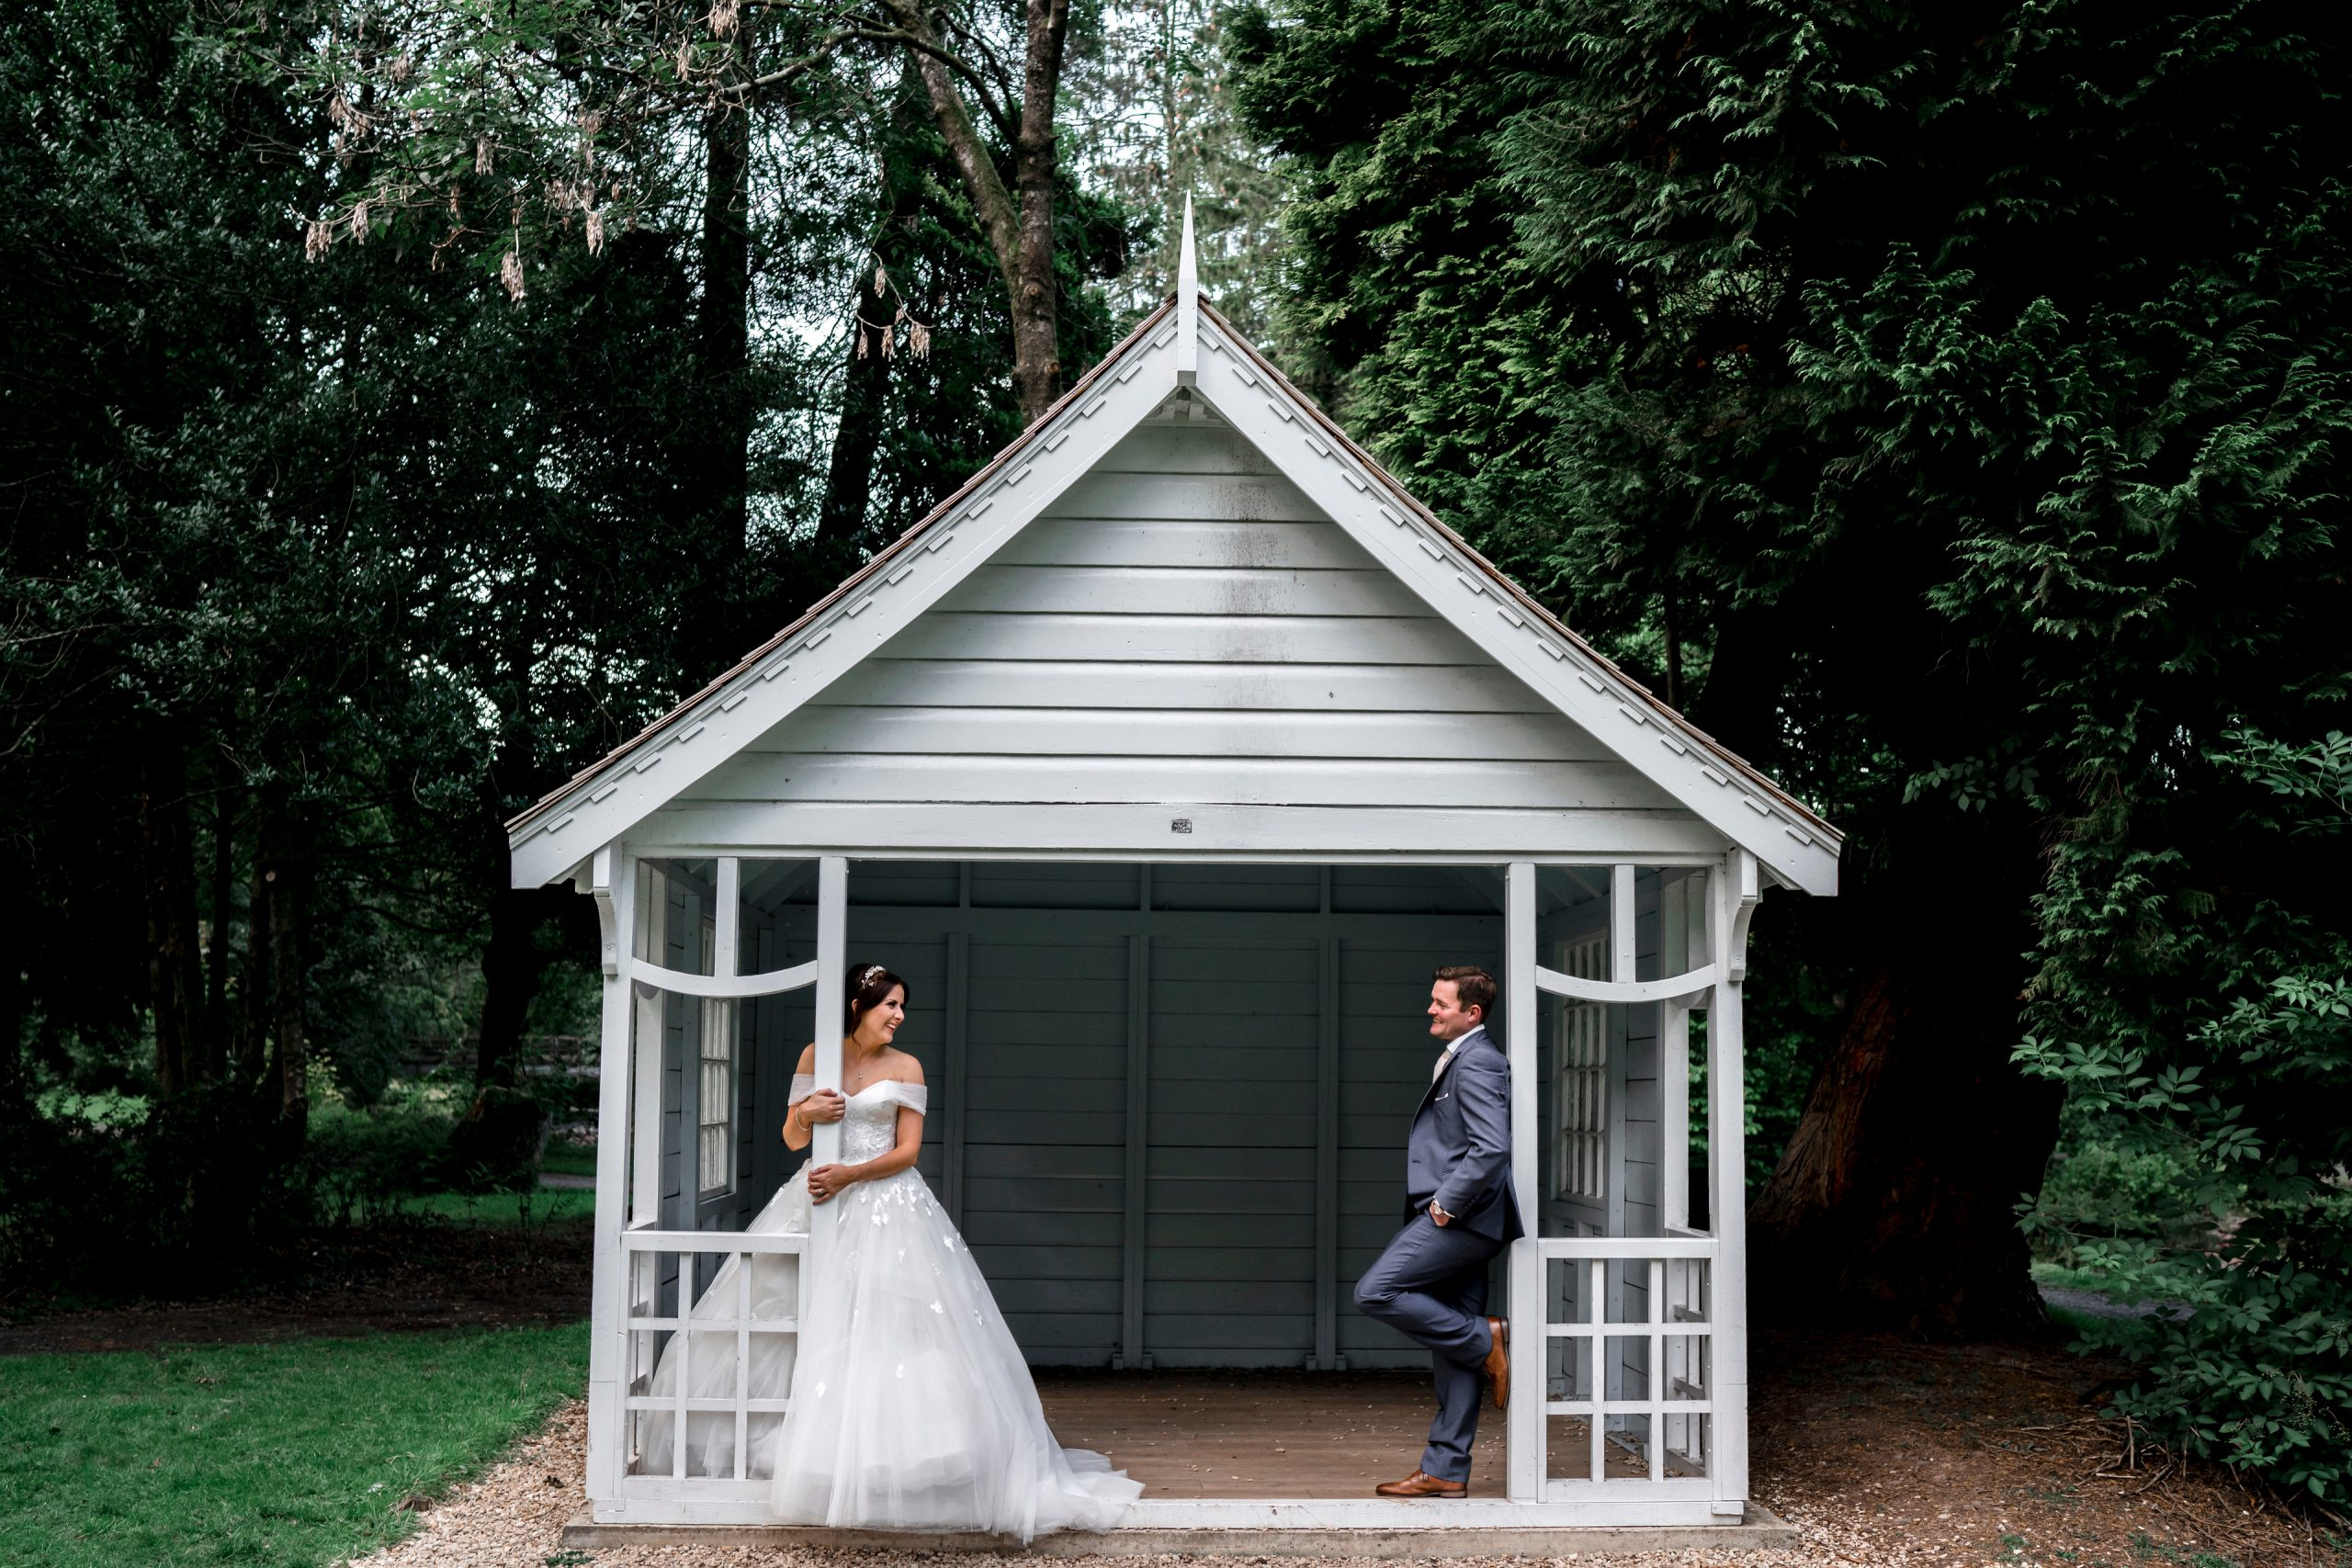 Bride and groom in a cabin look at each other